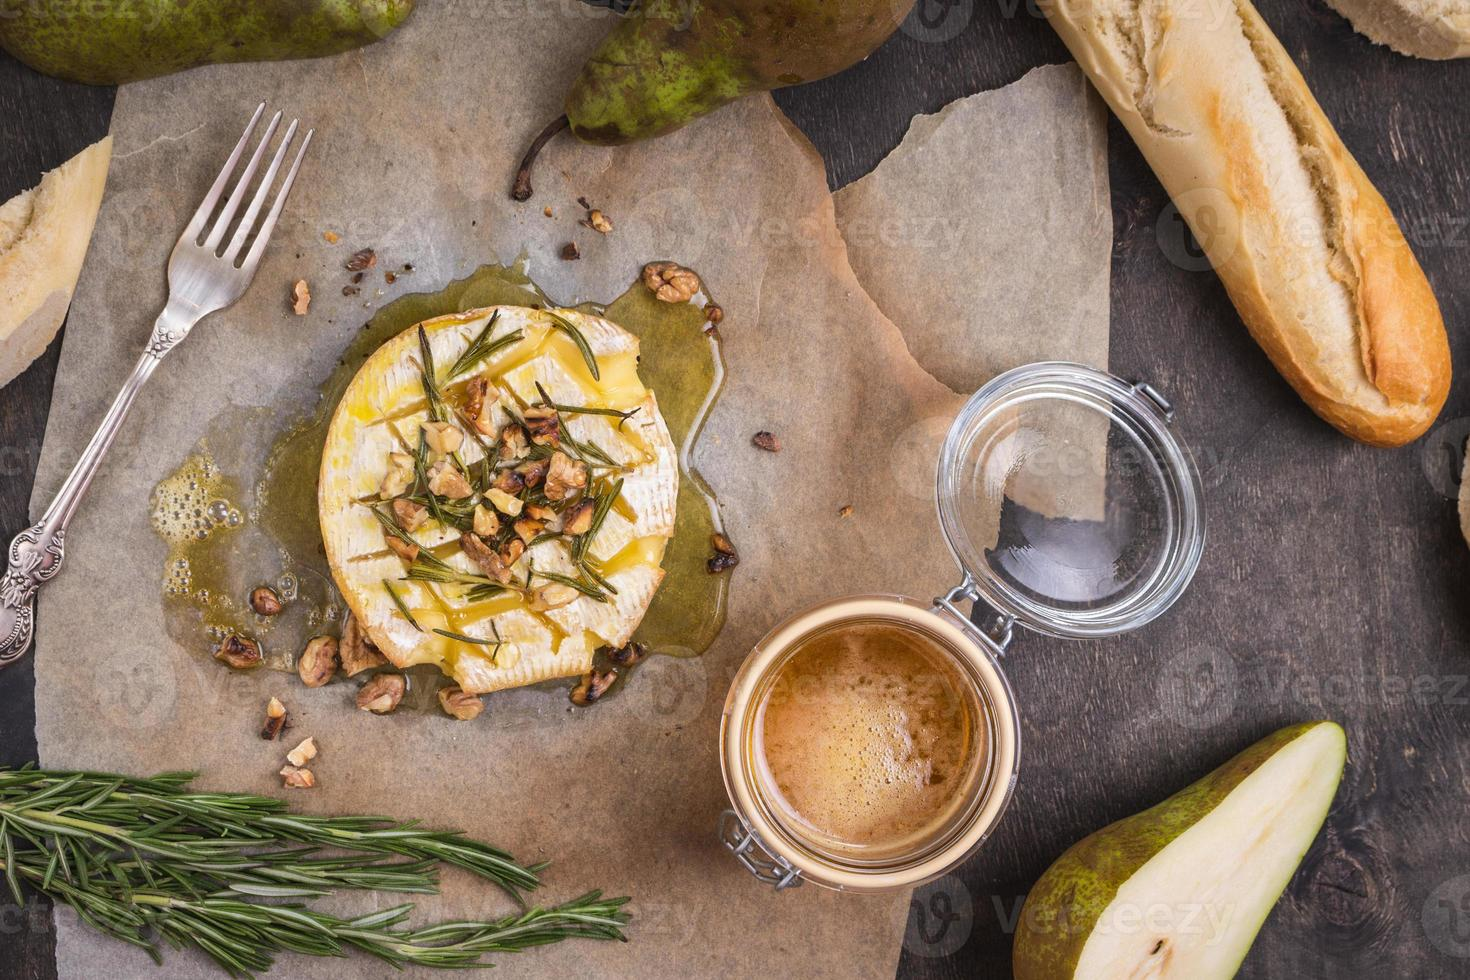 Delicious baked camembert with honey, walnuts, herbs and pears photo